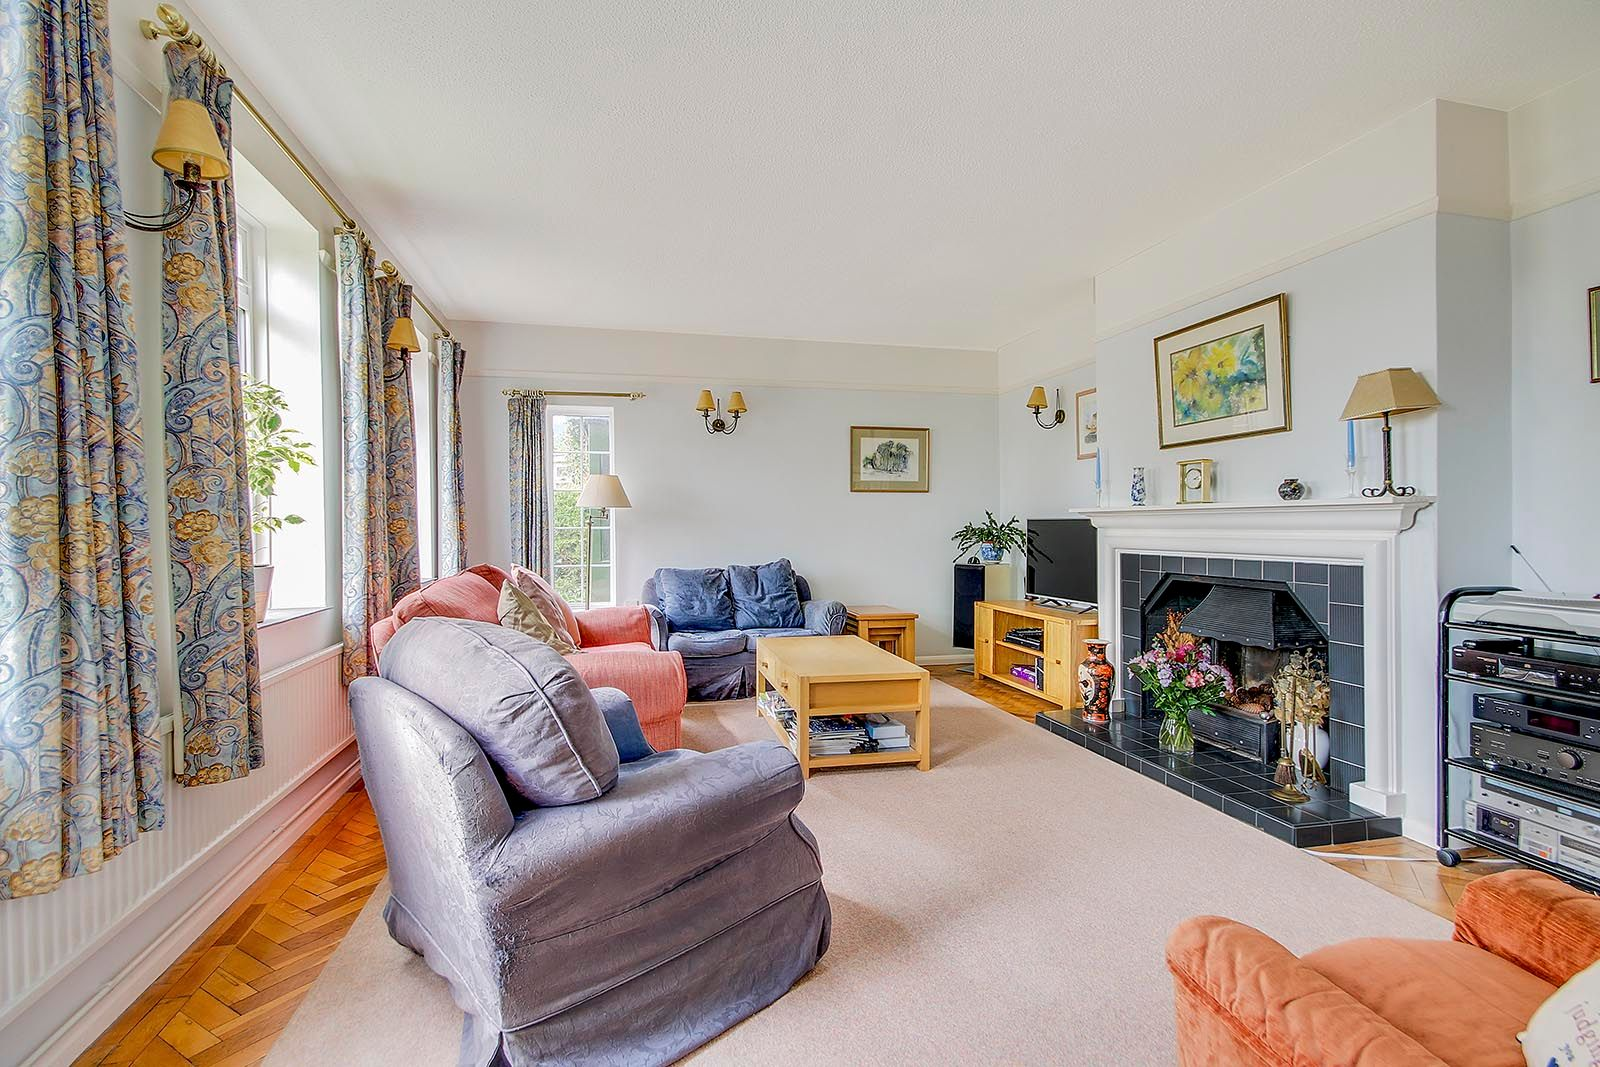 4 bed house for sale in Mill Road (COMP AUG 19) 2